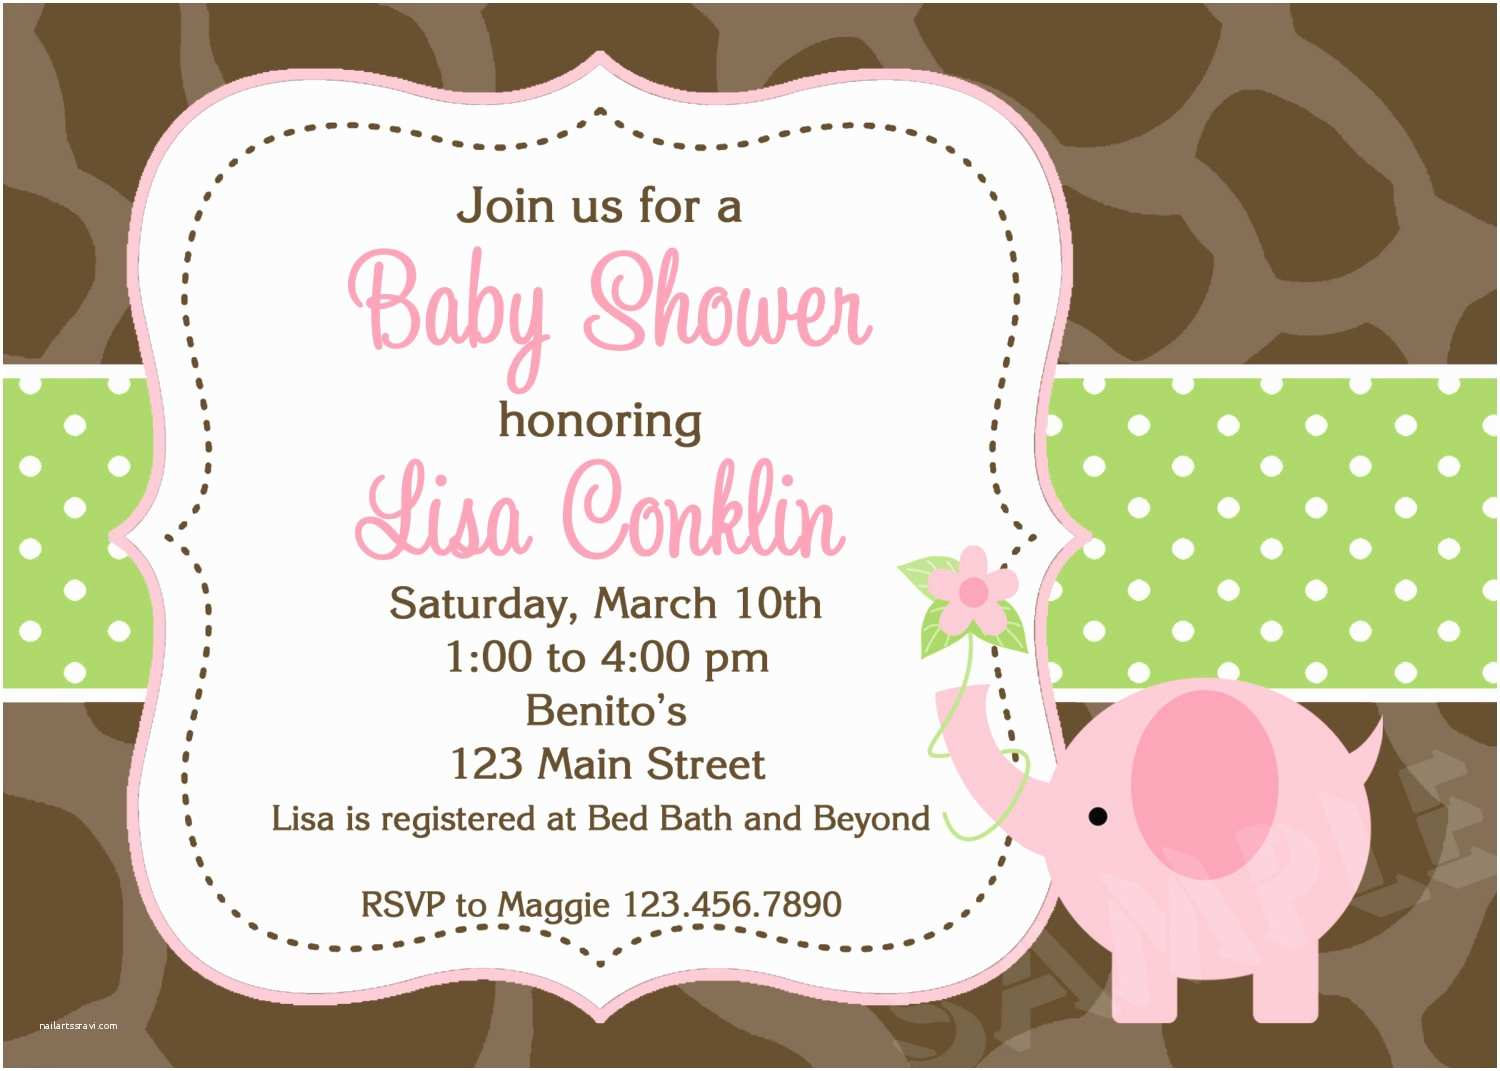 Pink and Gray Baby Shower Invitations Pink and Gray Couples Baby Shower Invitation Card with